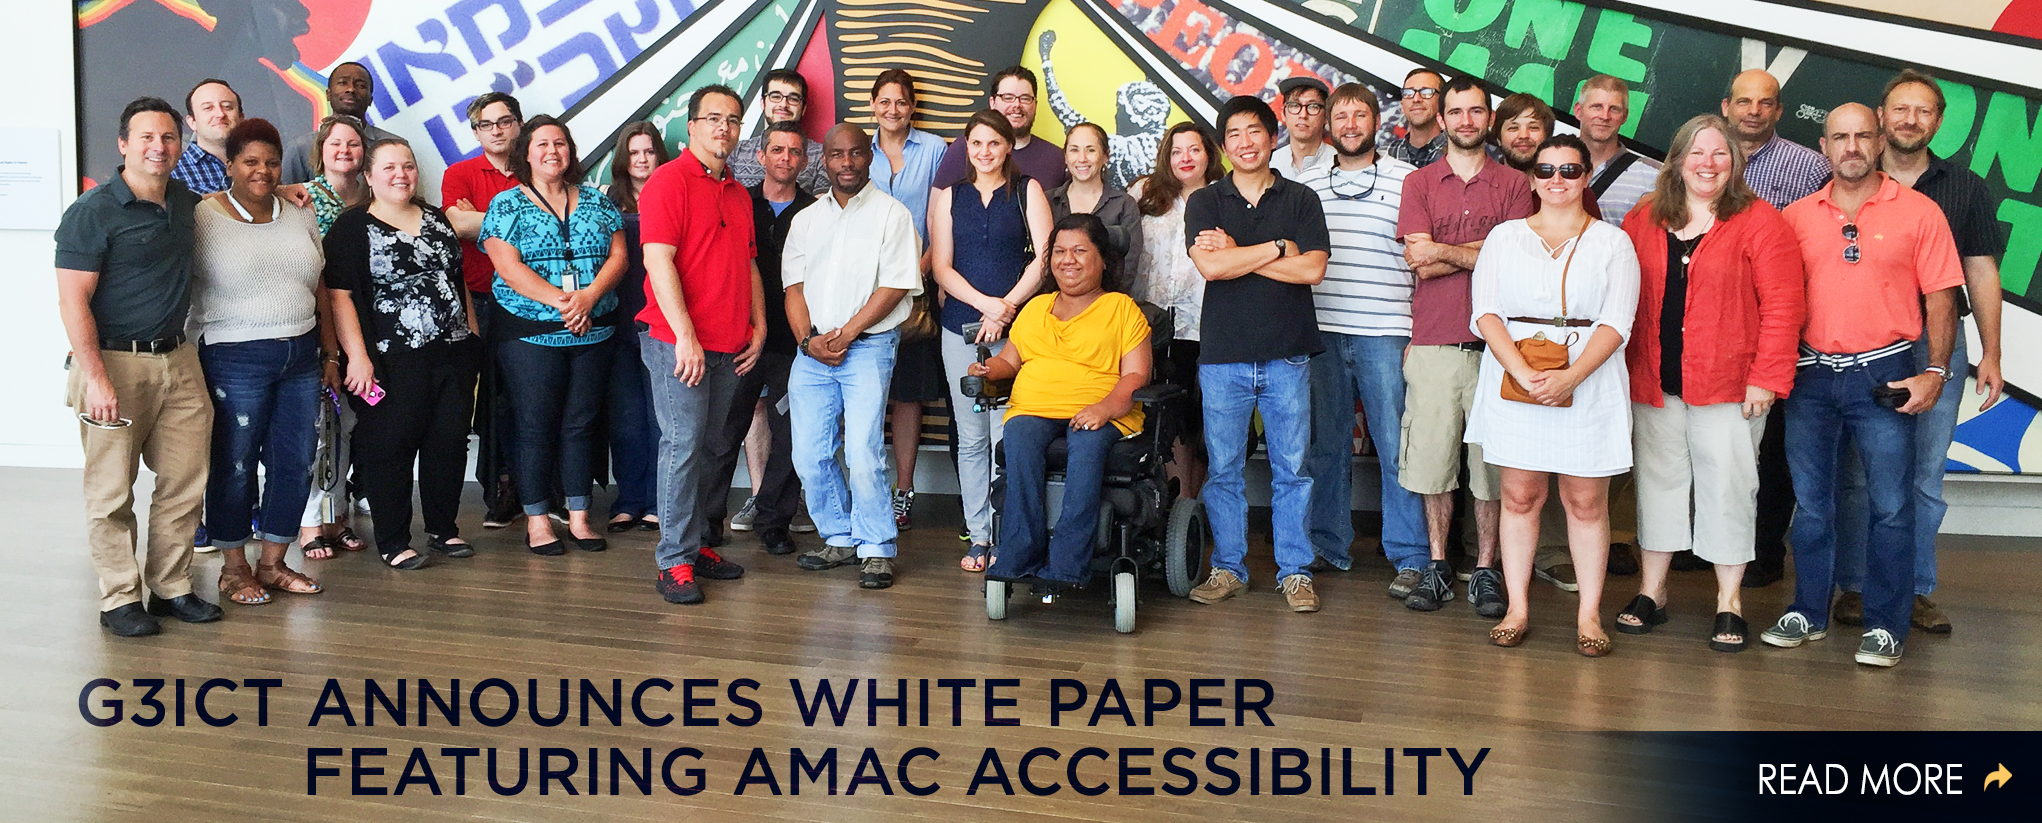 G3ICT Announces White Paper Featuring AMAC Accessibility